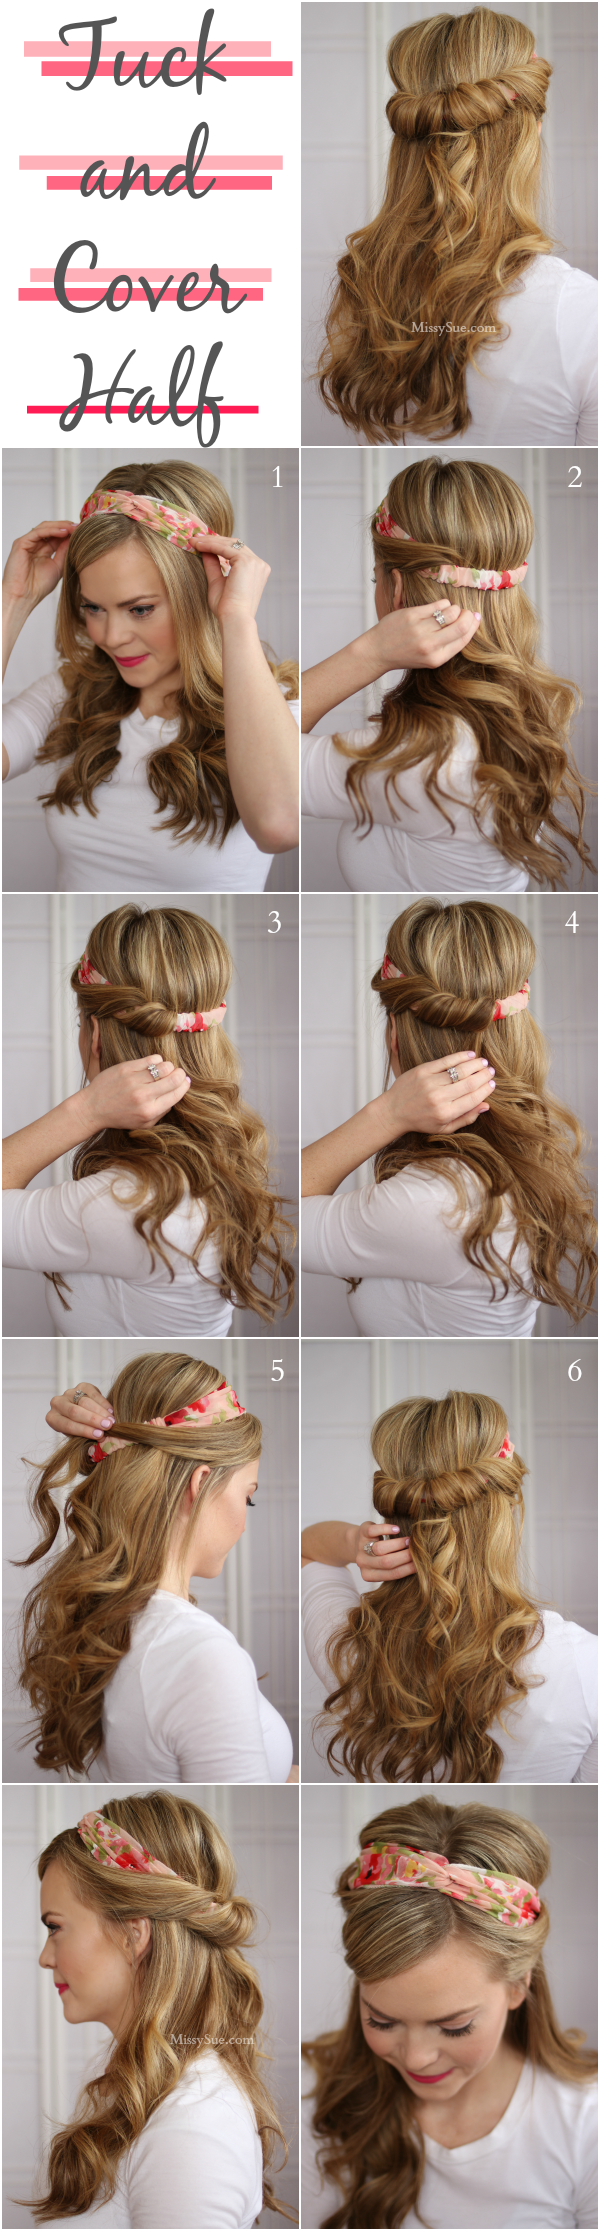 Tuck and cover half up hairstyle the perfect way to your favorite